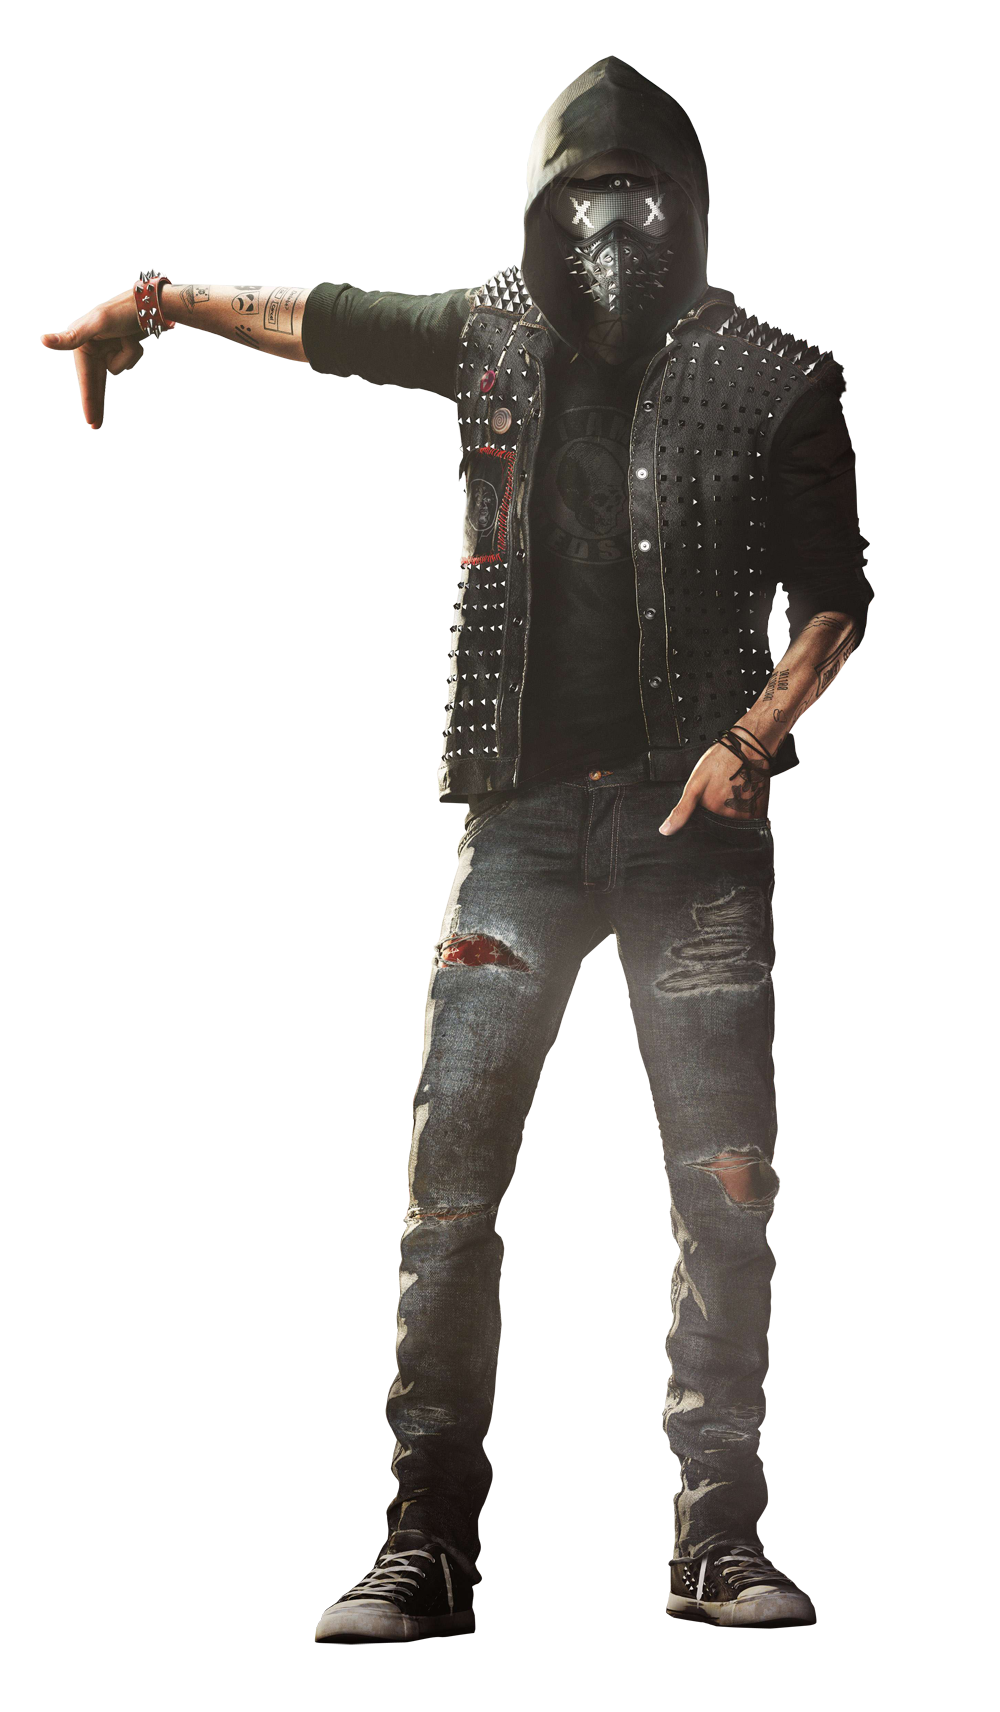 Watch_dogs png gangster character. Watch dogs free download